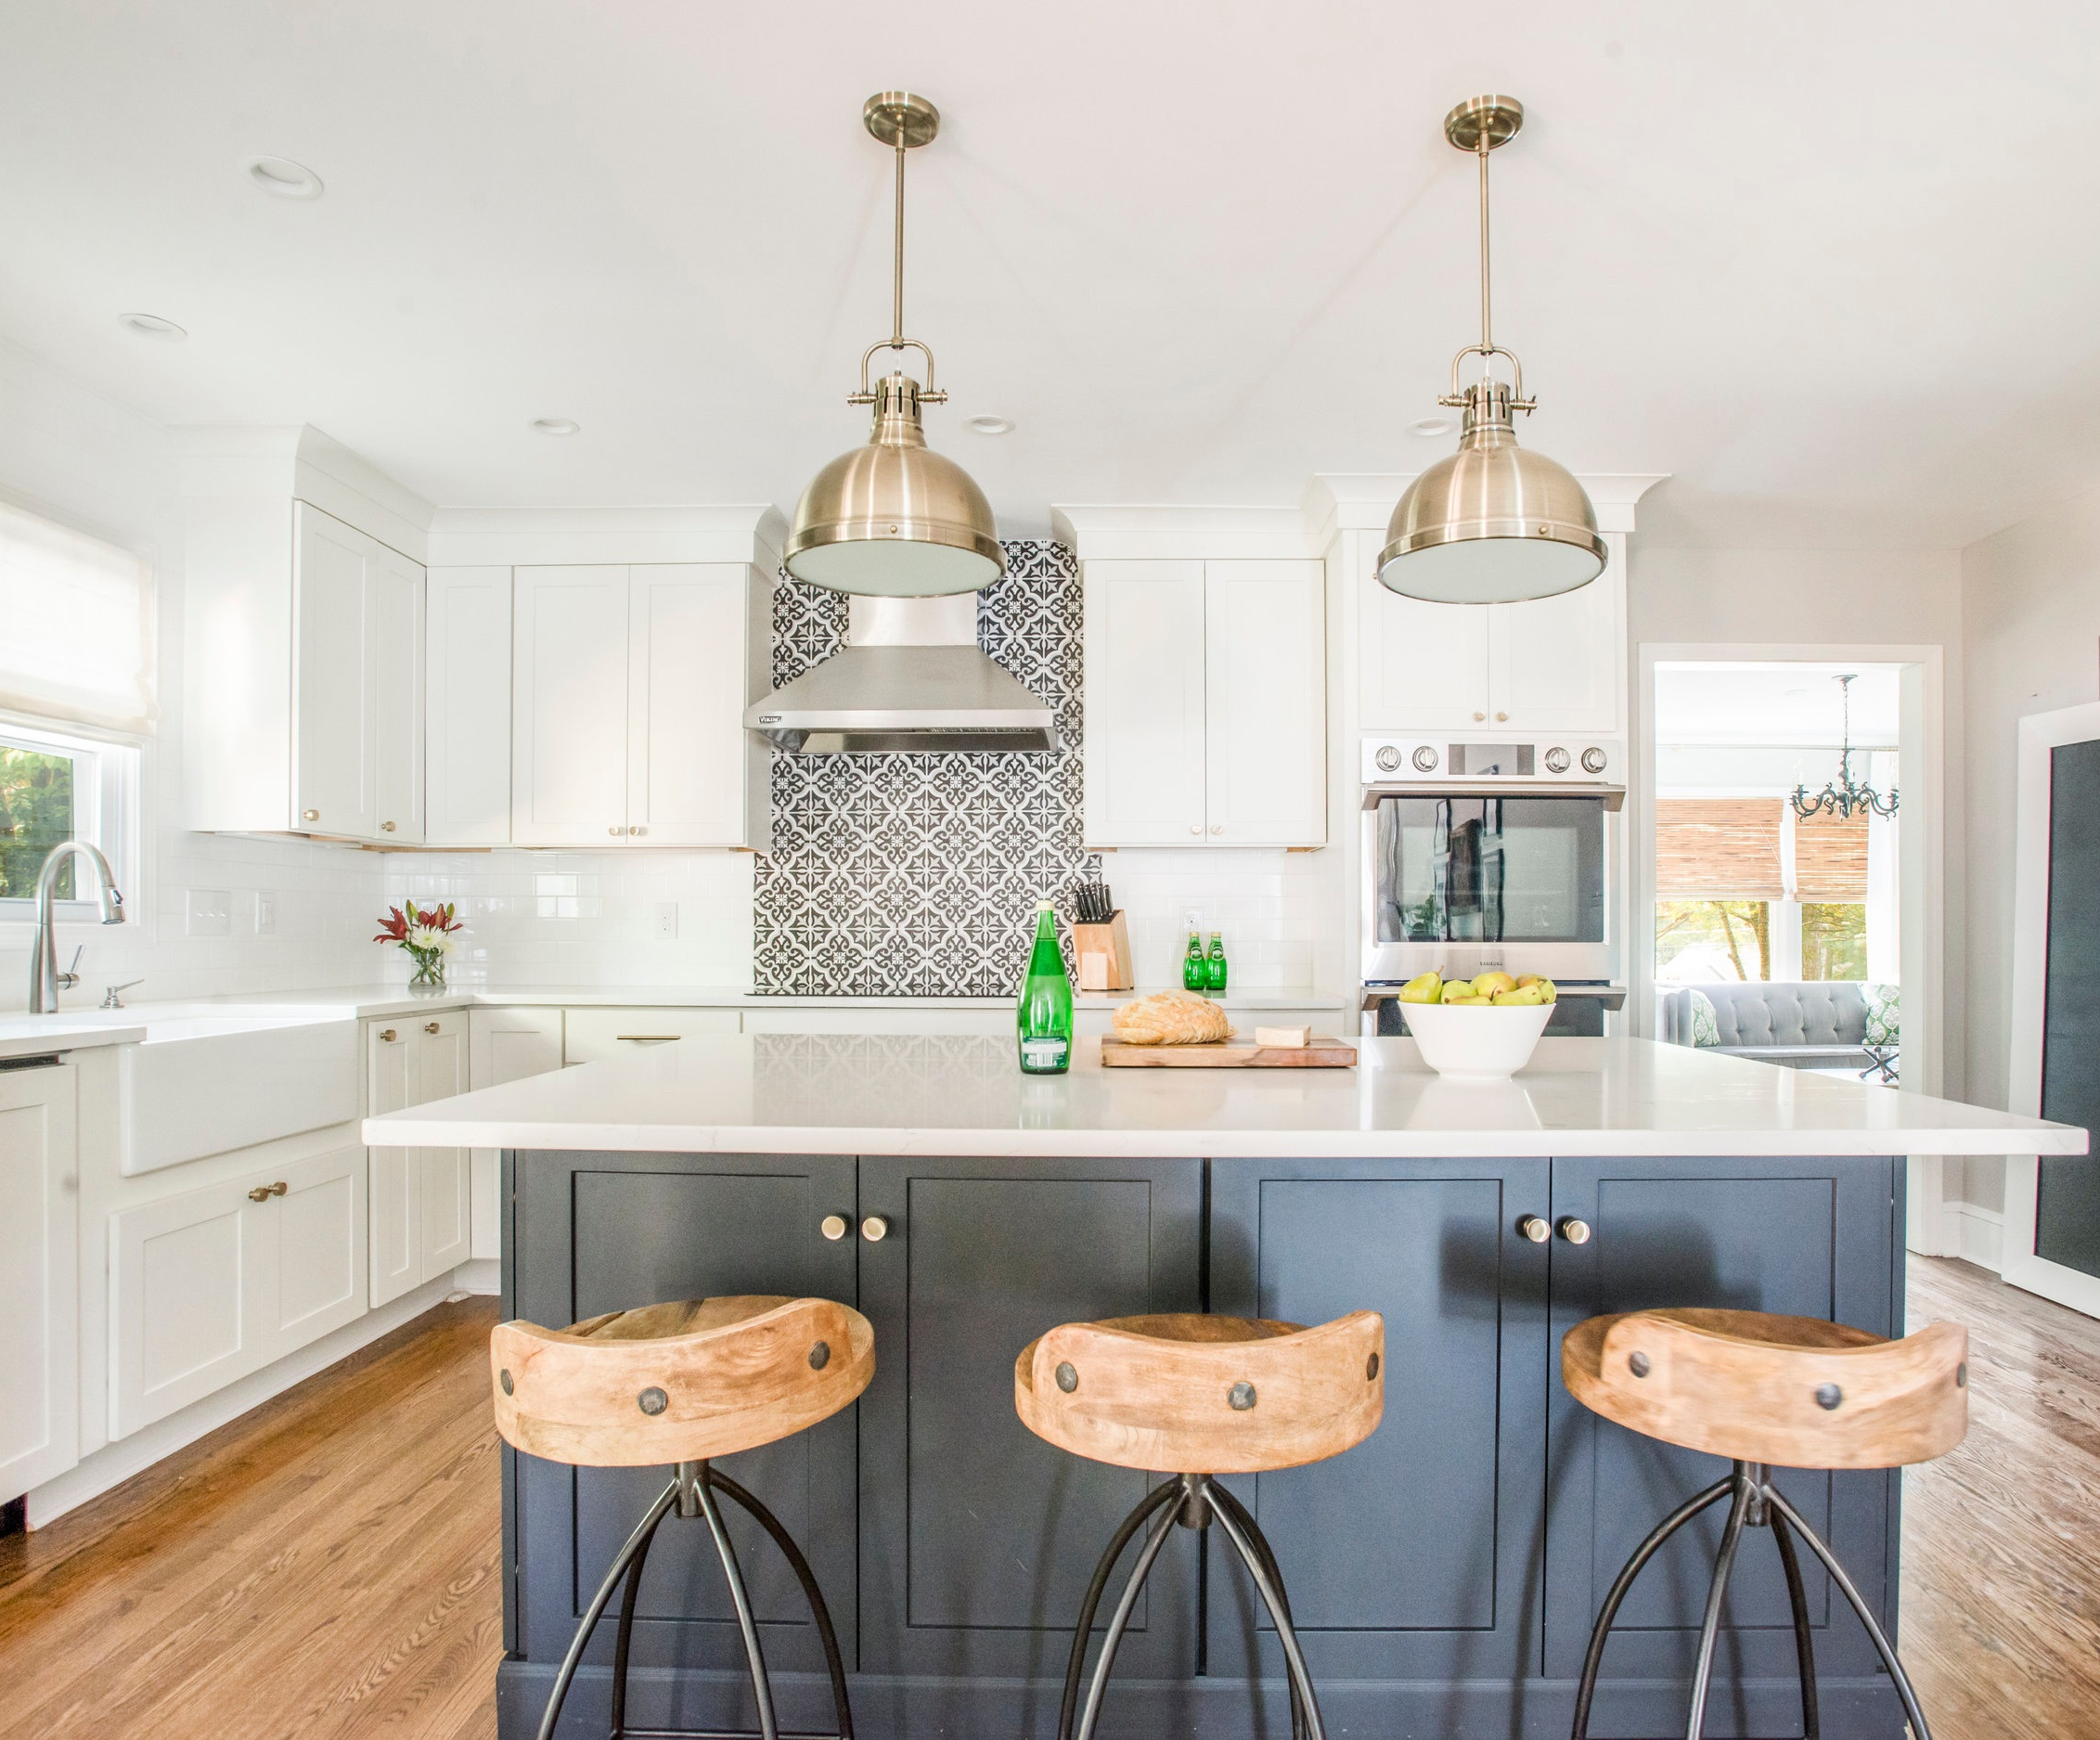 Jana+Donohoe+Designs+Westhaven+Project+.jpg